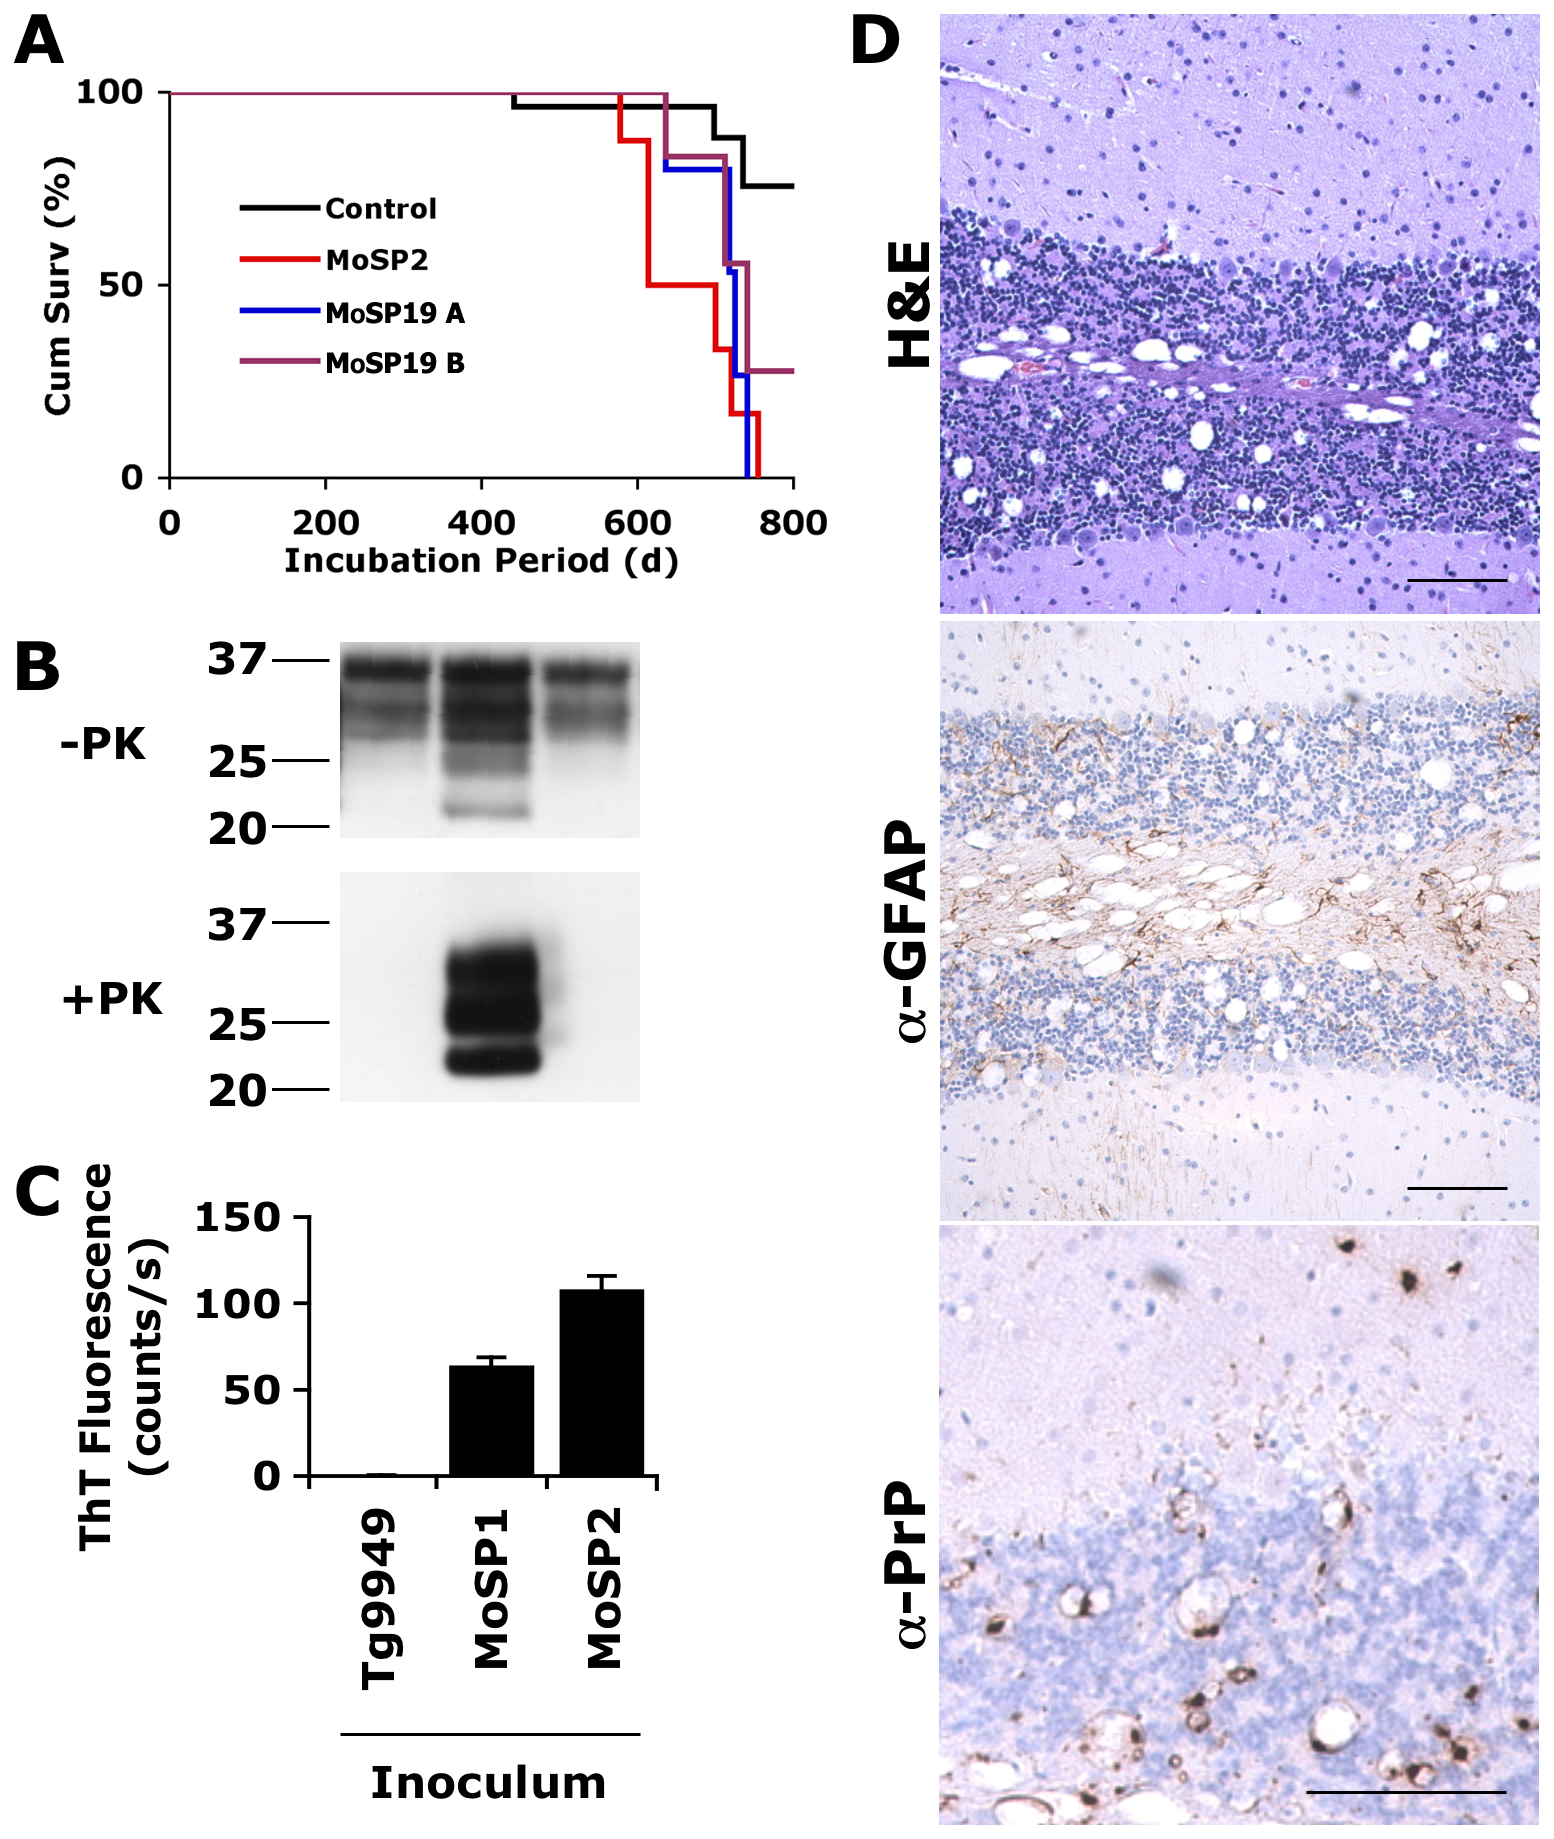 Protease-sensitive synthetic prions are serially transmissible to Tg4053 mice.